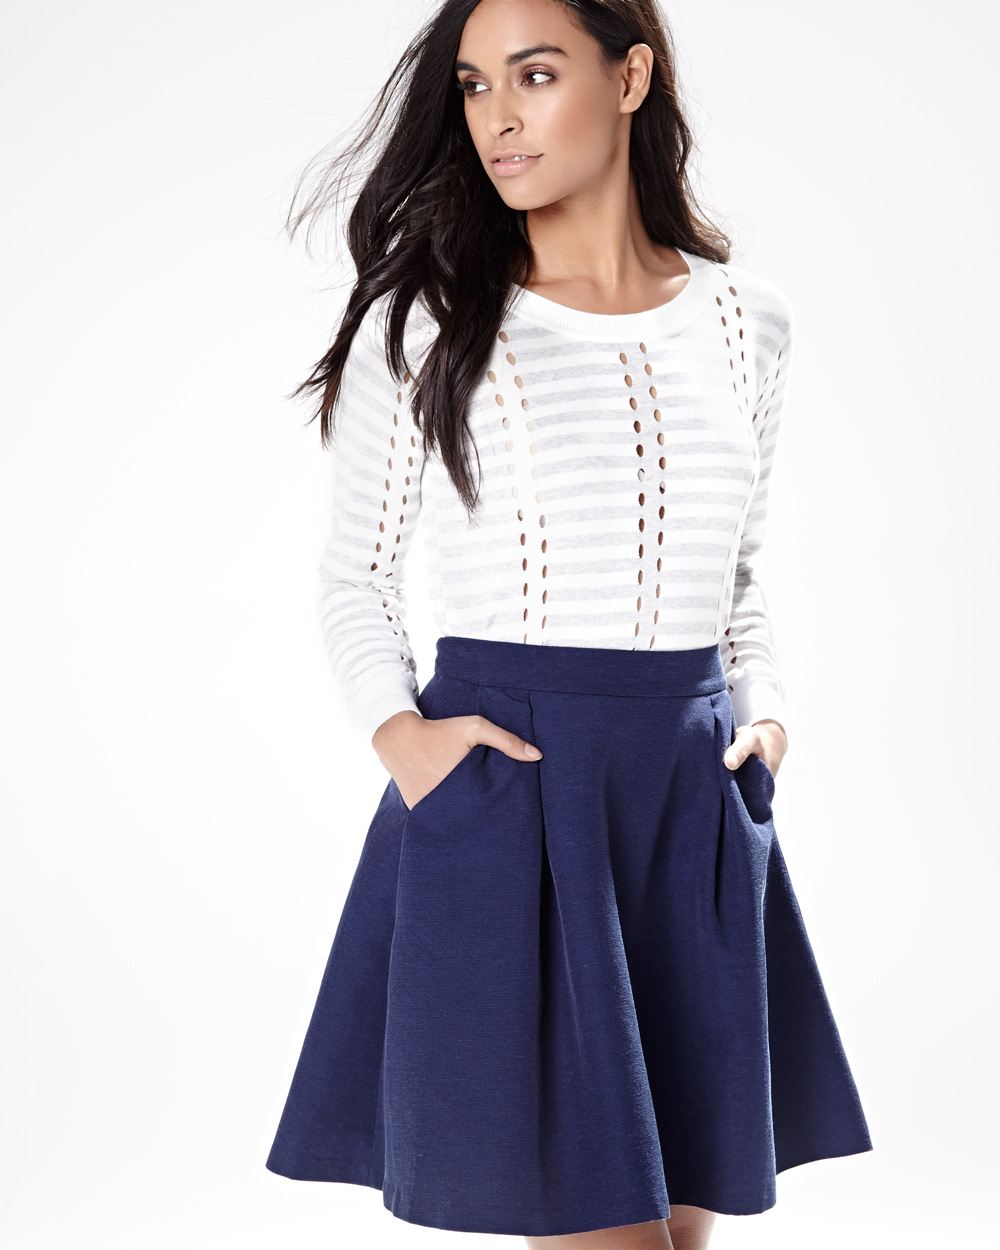 Pleated skirt with pockets | RW&CO.